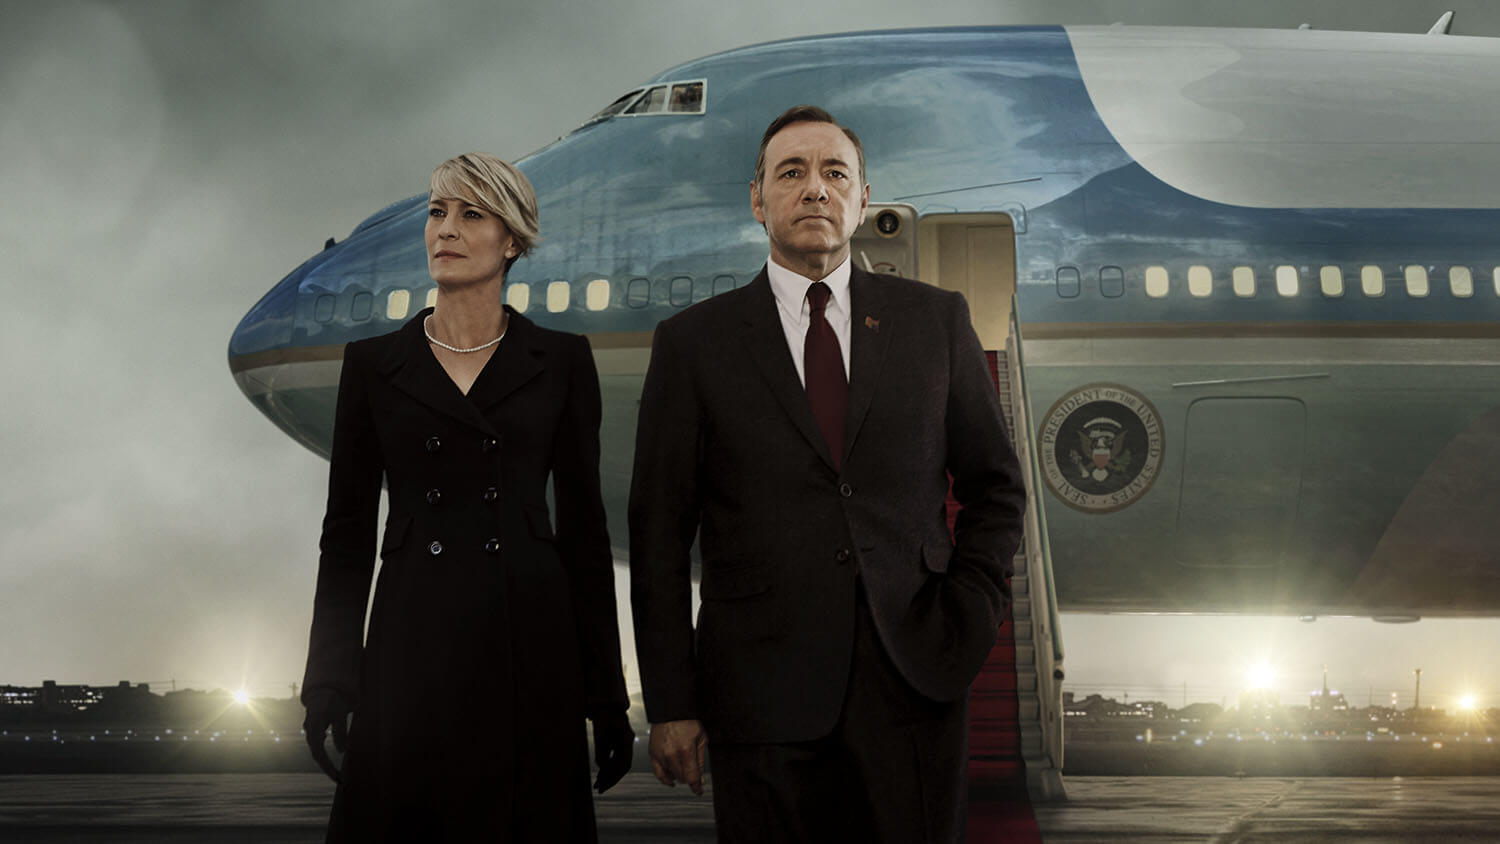 House of Cards Season 5 Promo 2